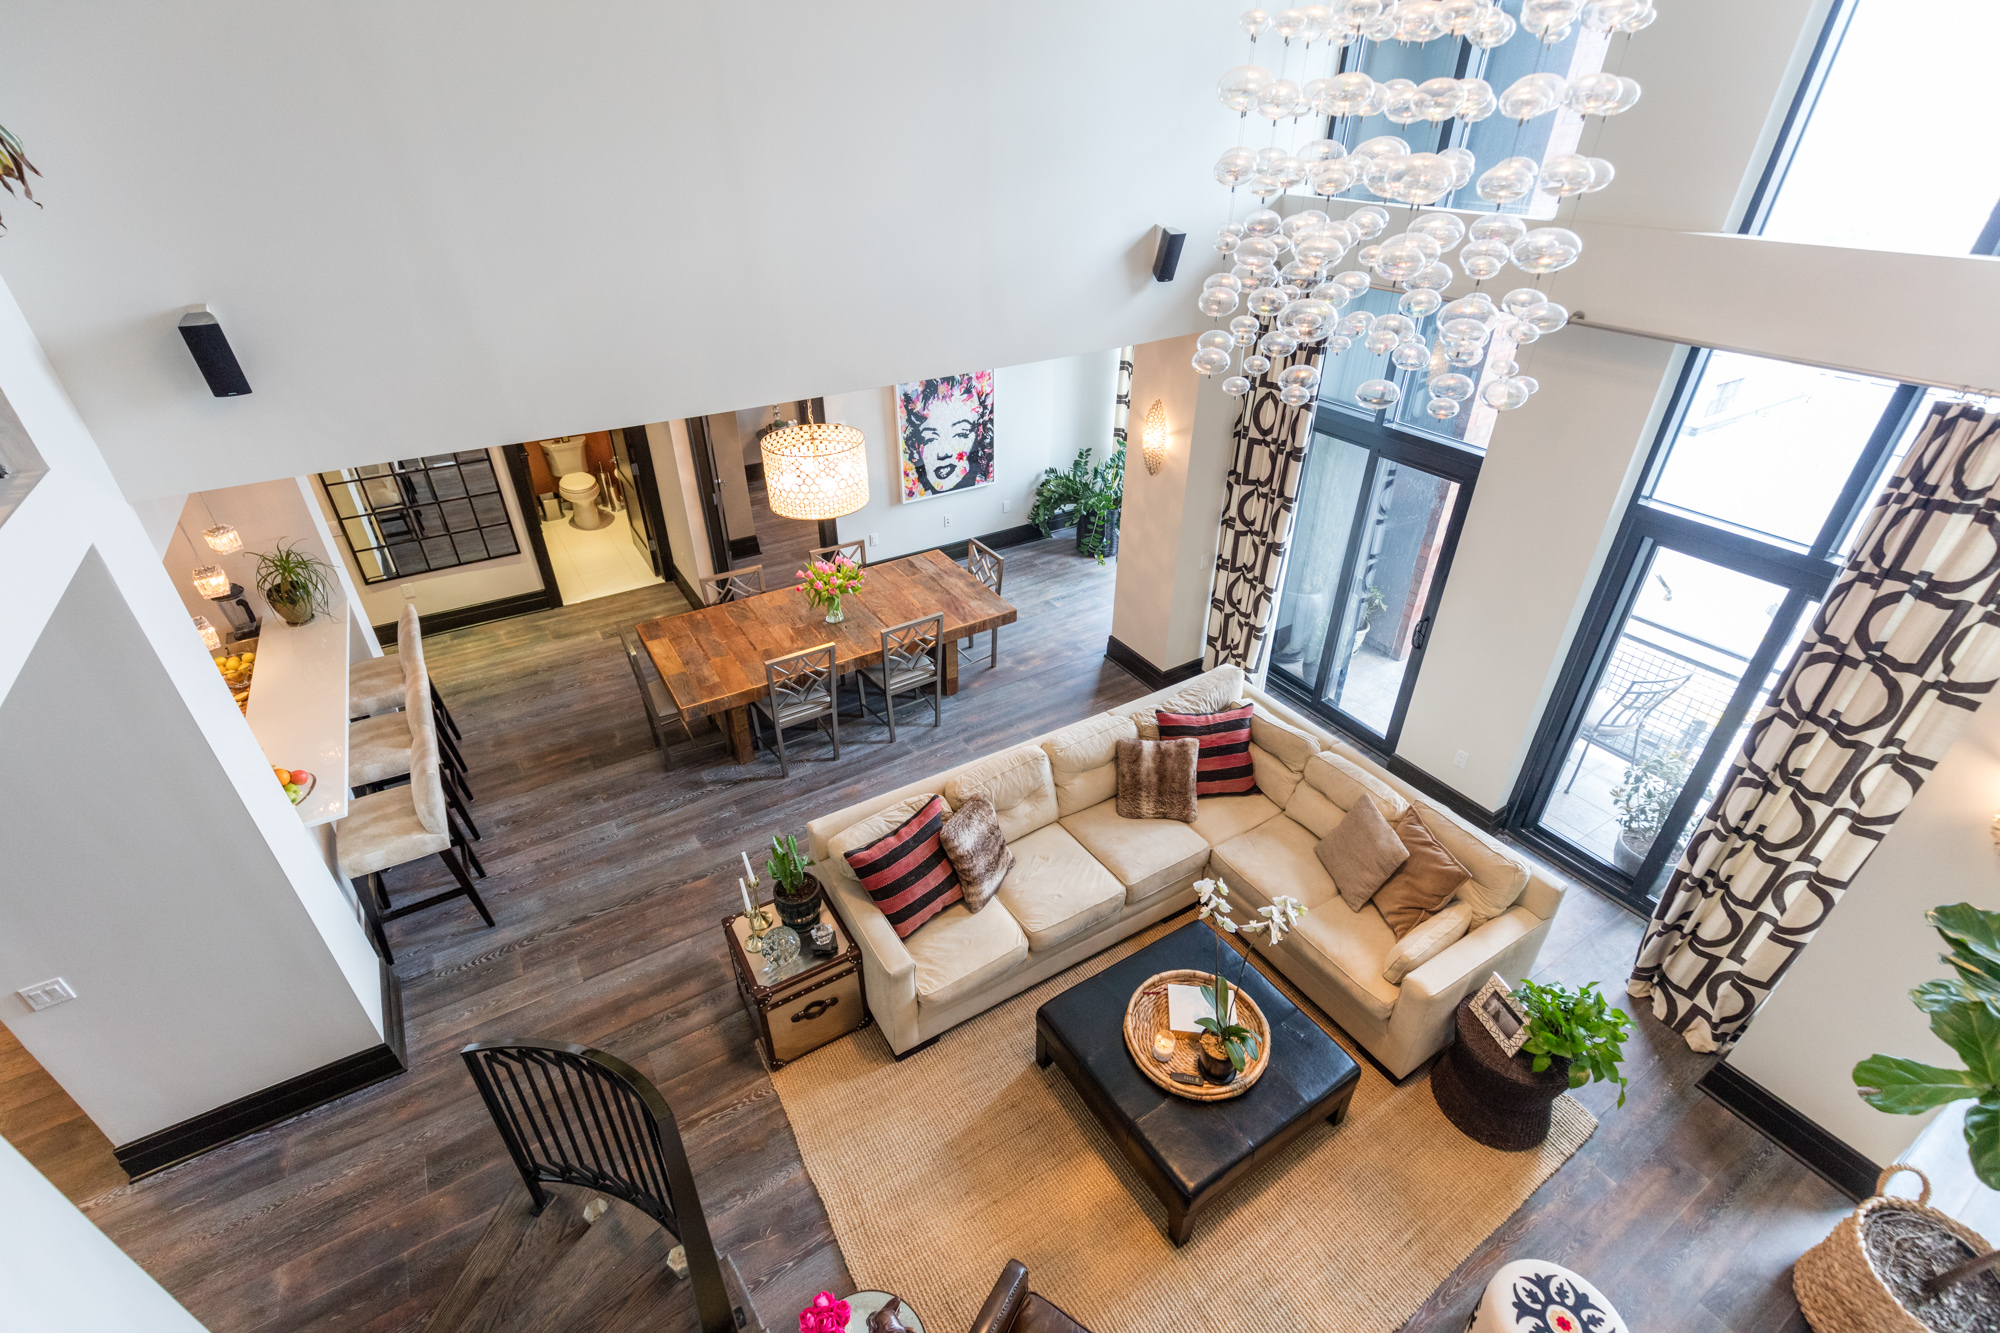 Looking Down On The Living Room. Photo By Max Touhey For Curbed.